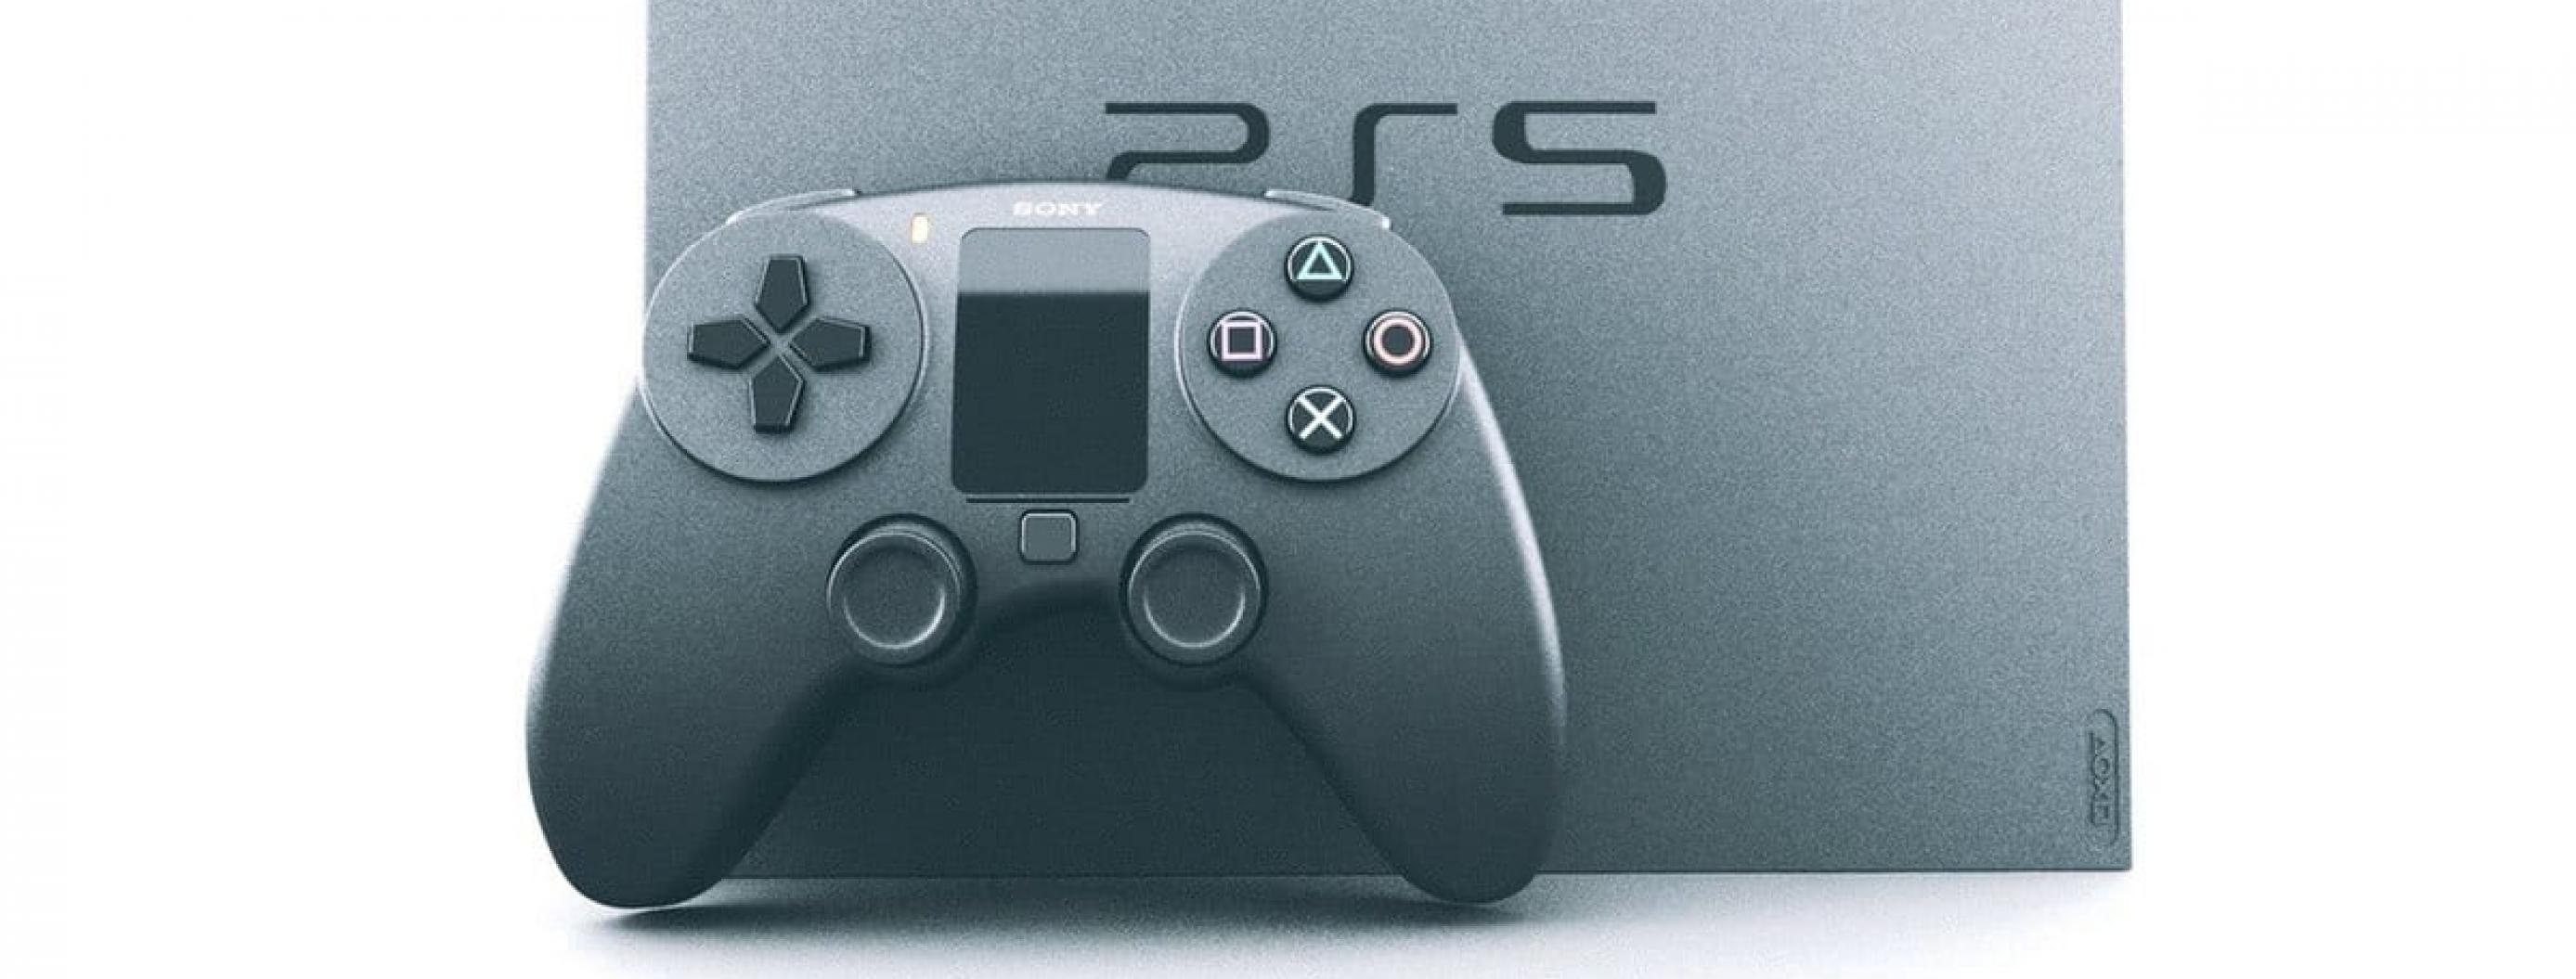 We Now Have The Surprising Specs For The Upcoming PS5